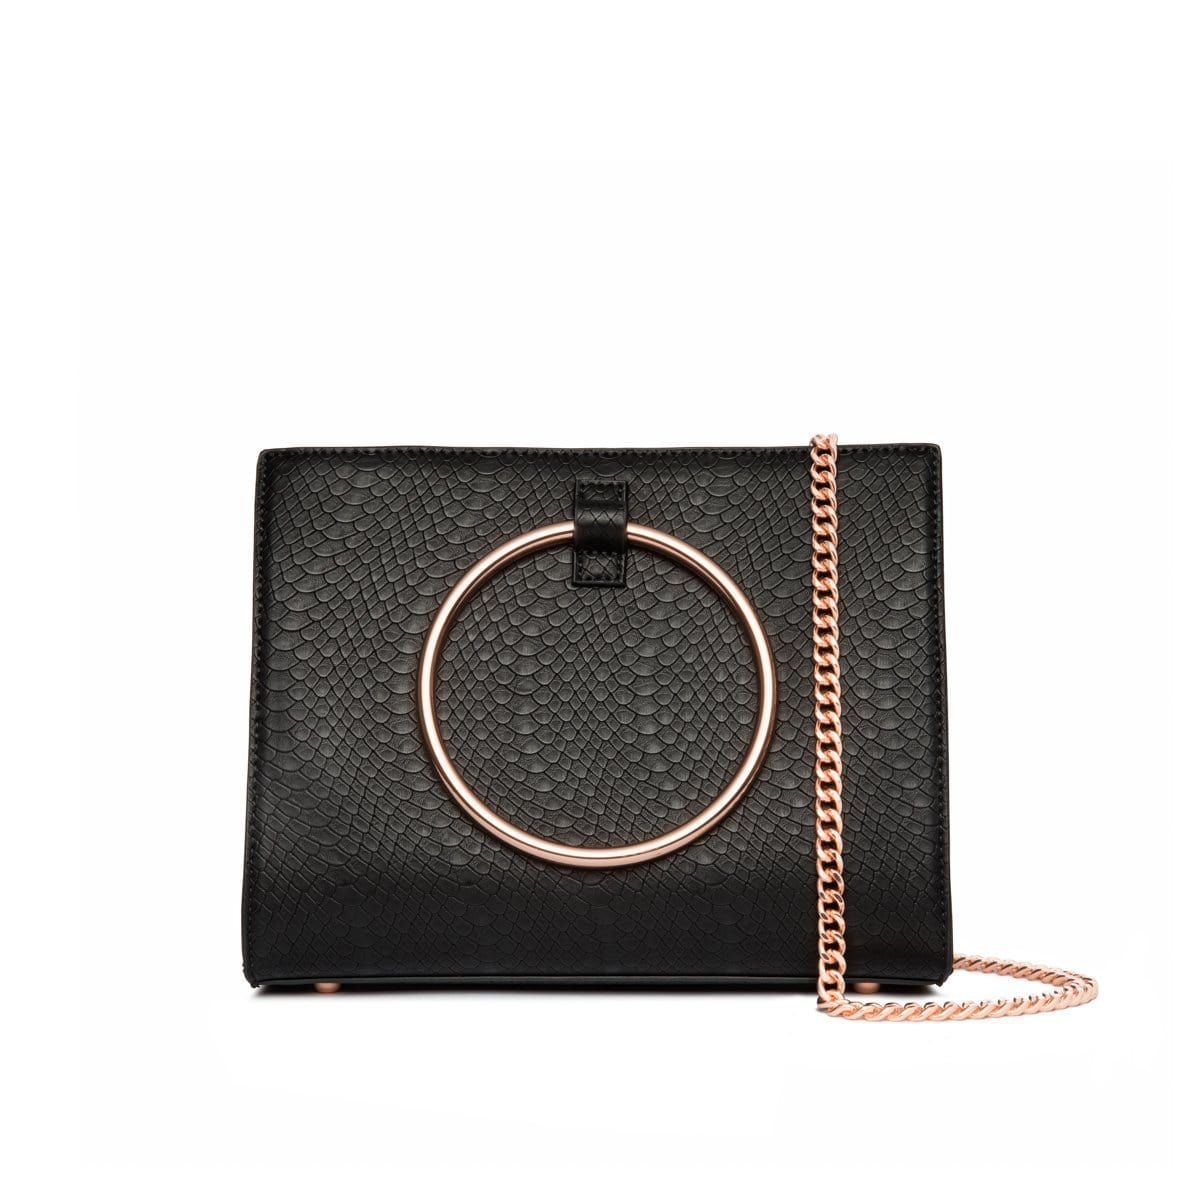 Moda Top Handle Bag (Jet Black/Rose Gold)